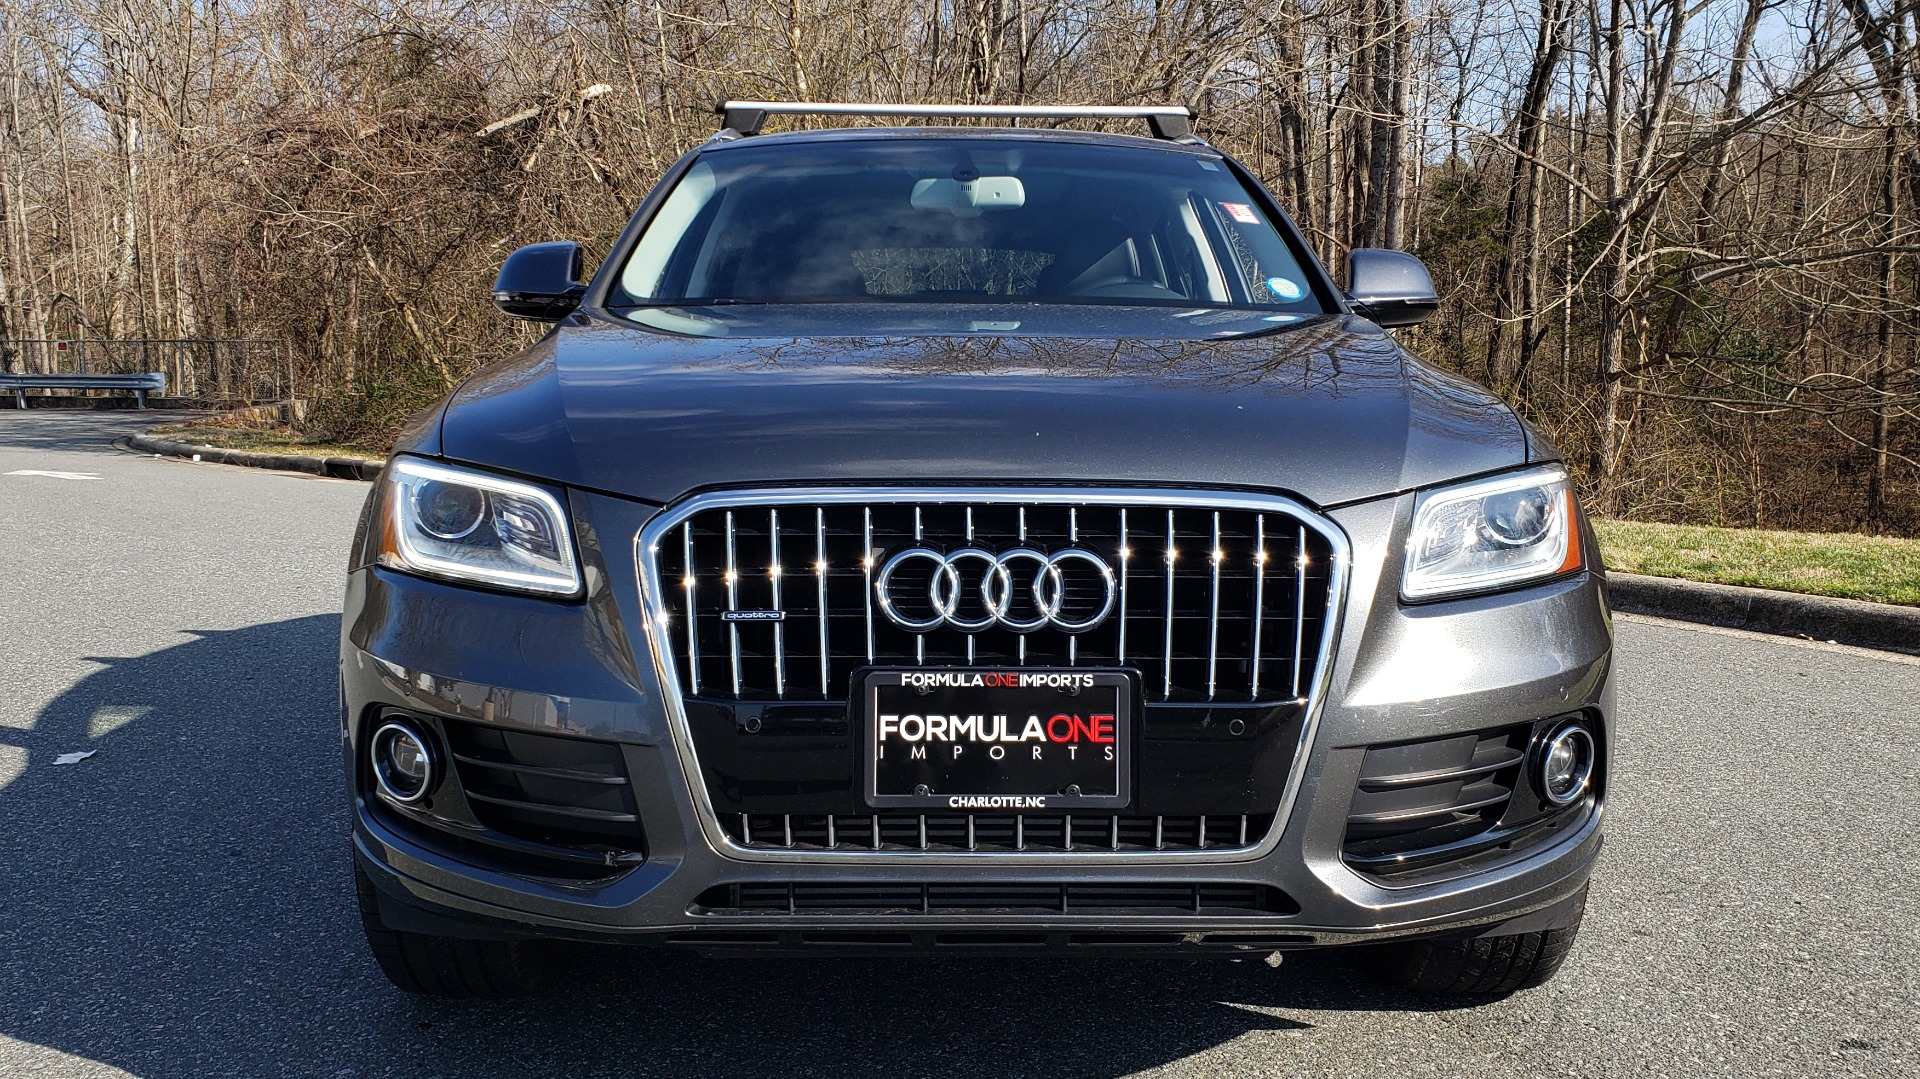 Used 2017 Audi Q5 PREMIUM PLUS / TECH / NAV / PANO / REARVIEW / B&O SND for sale Sold at Formula Imports in Charlotte NC 28227 20